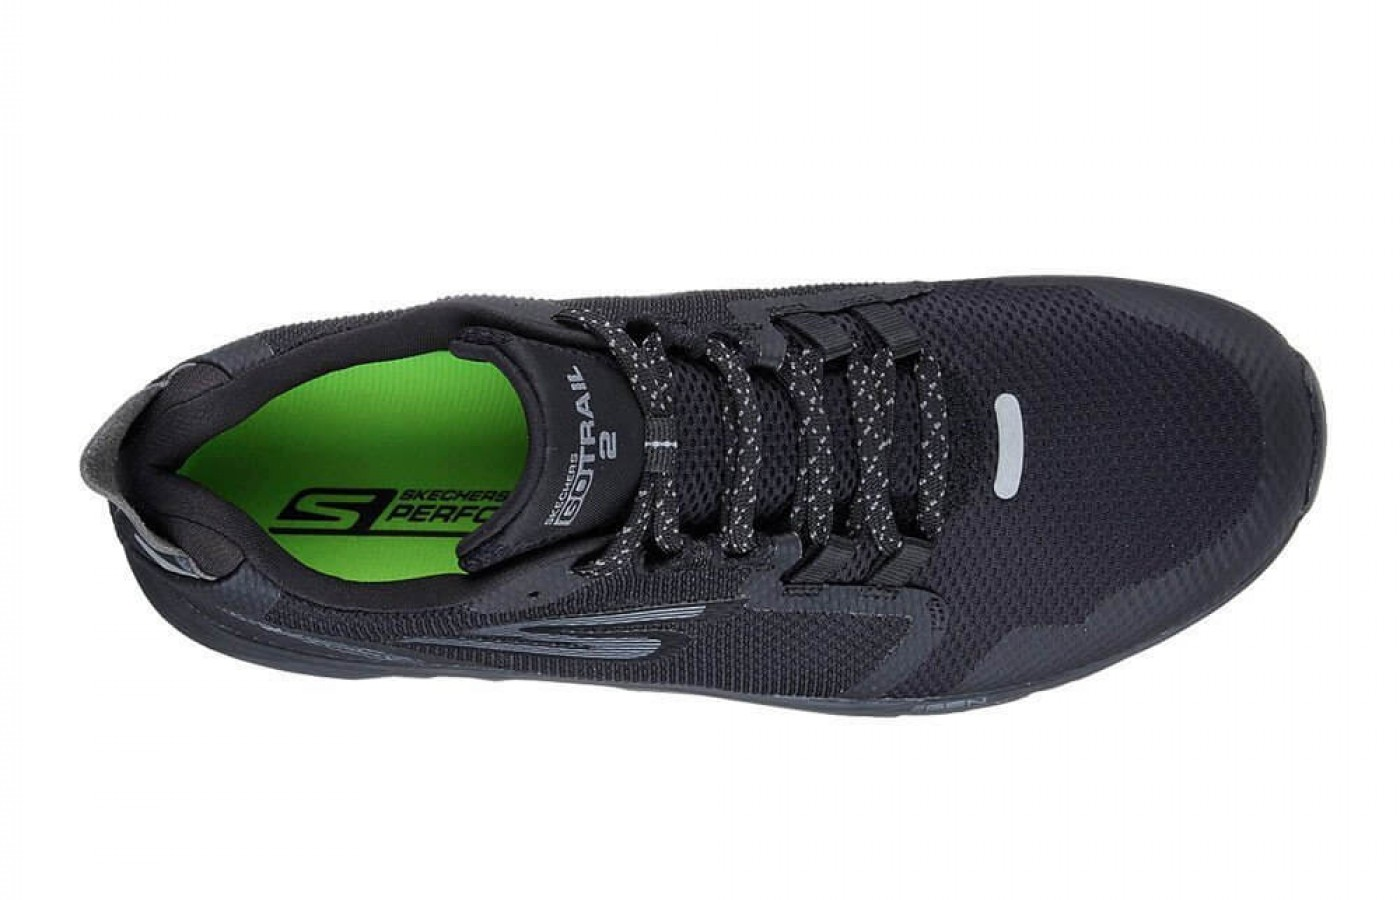 The Skechers GOTrail 2 features a stretch lacing system